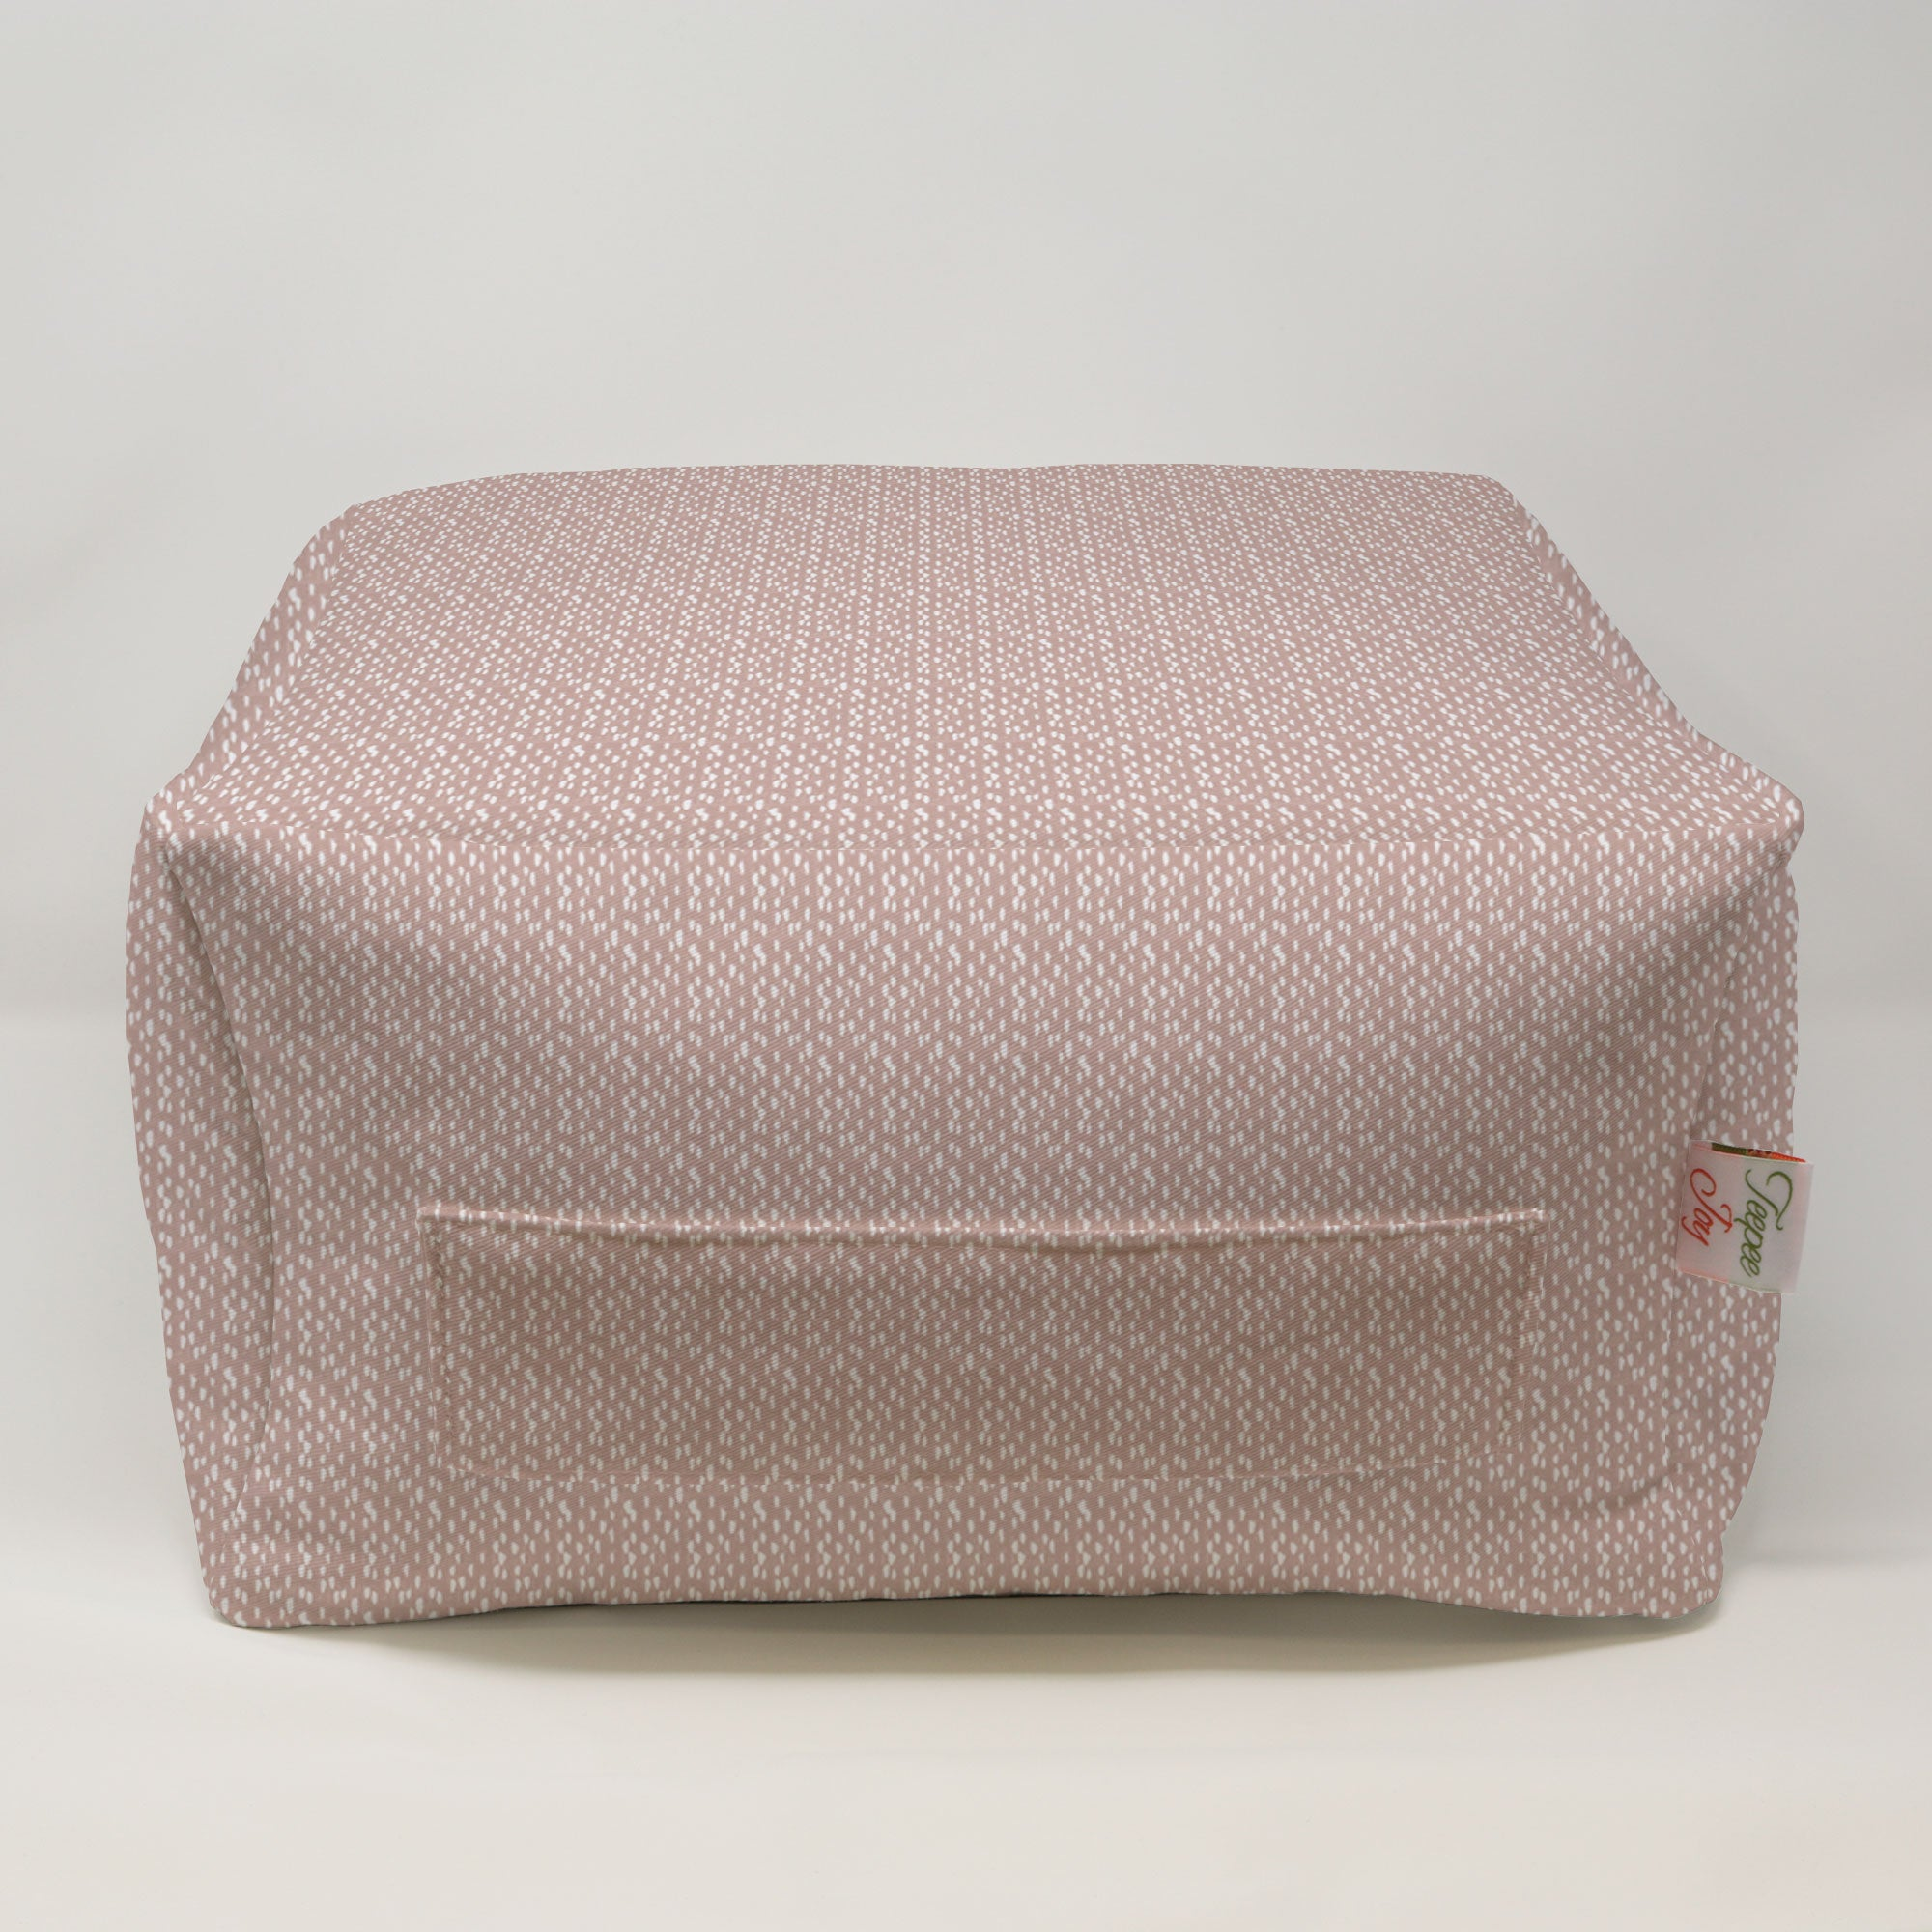 Kids Pouf - Riverbed Blush Drake